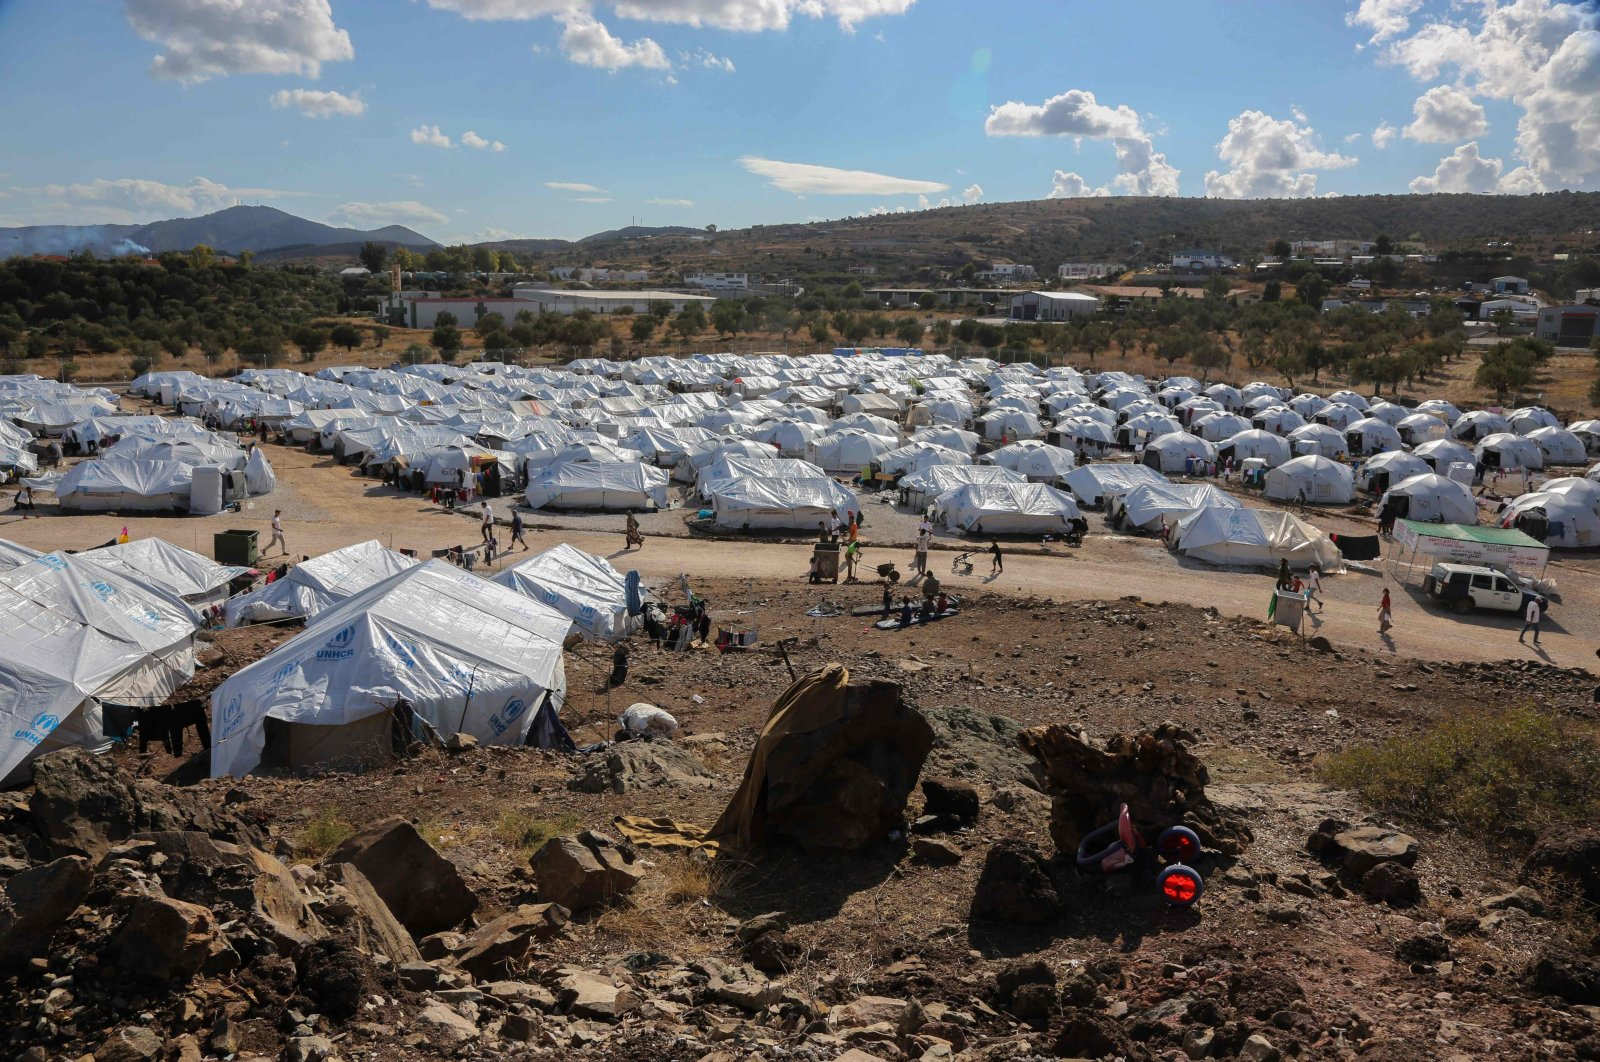 The Kara Tepe camp for refugees and migrants on the island of Lesbos, Greece, Oct. 14, 2020. (AFP)